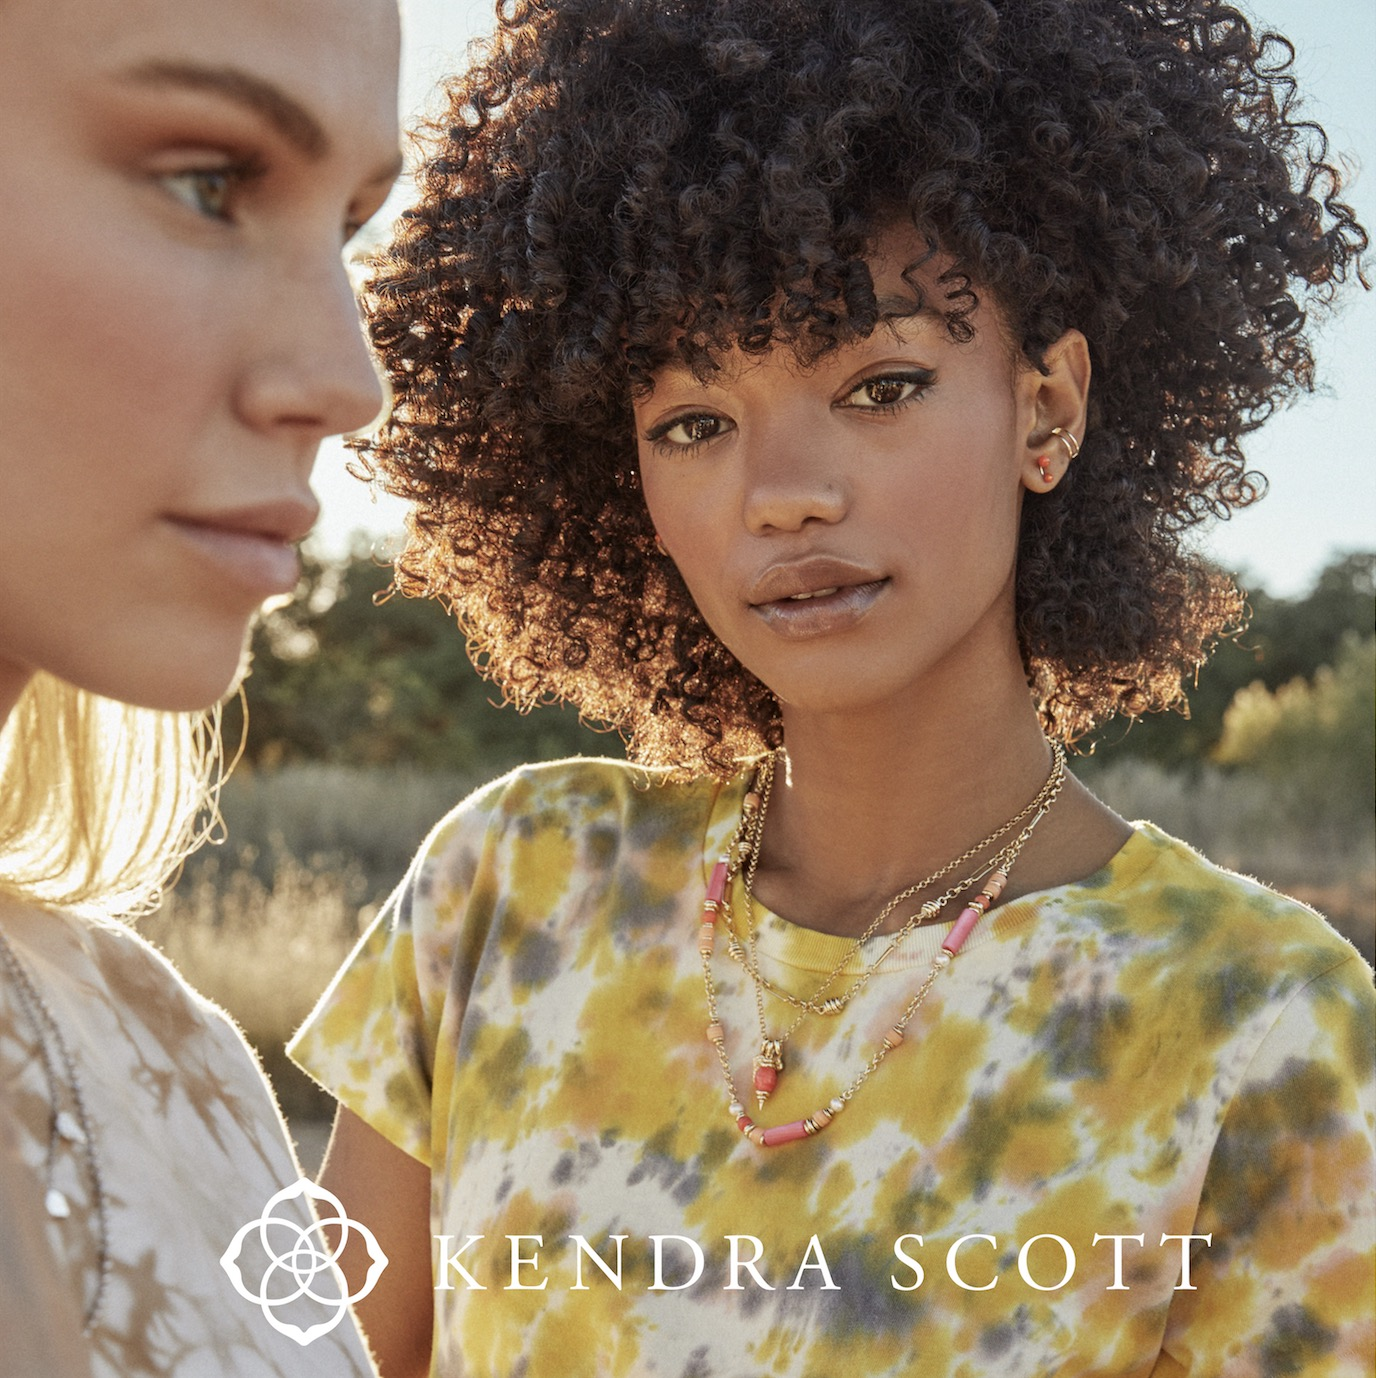 Georgetown - Kendra Scott Gives Back